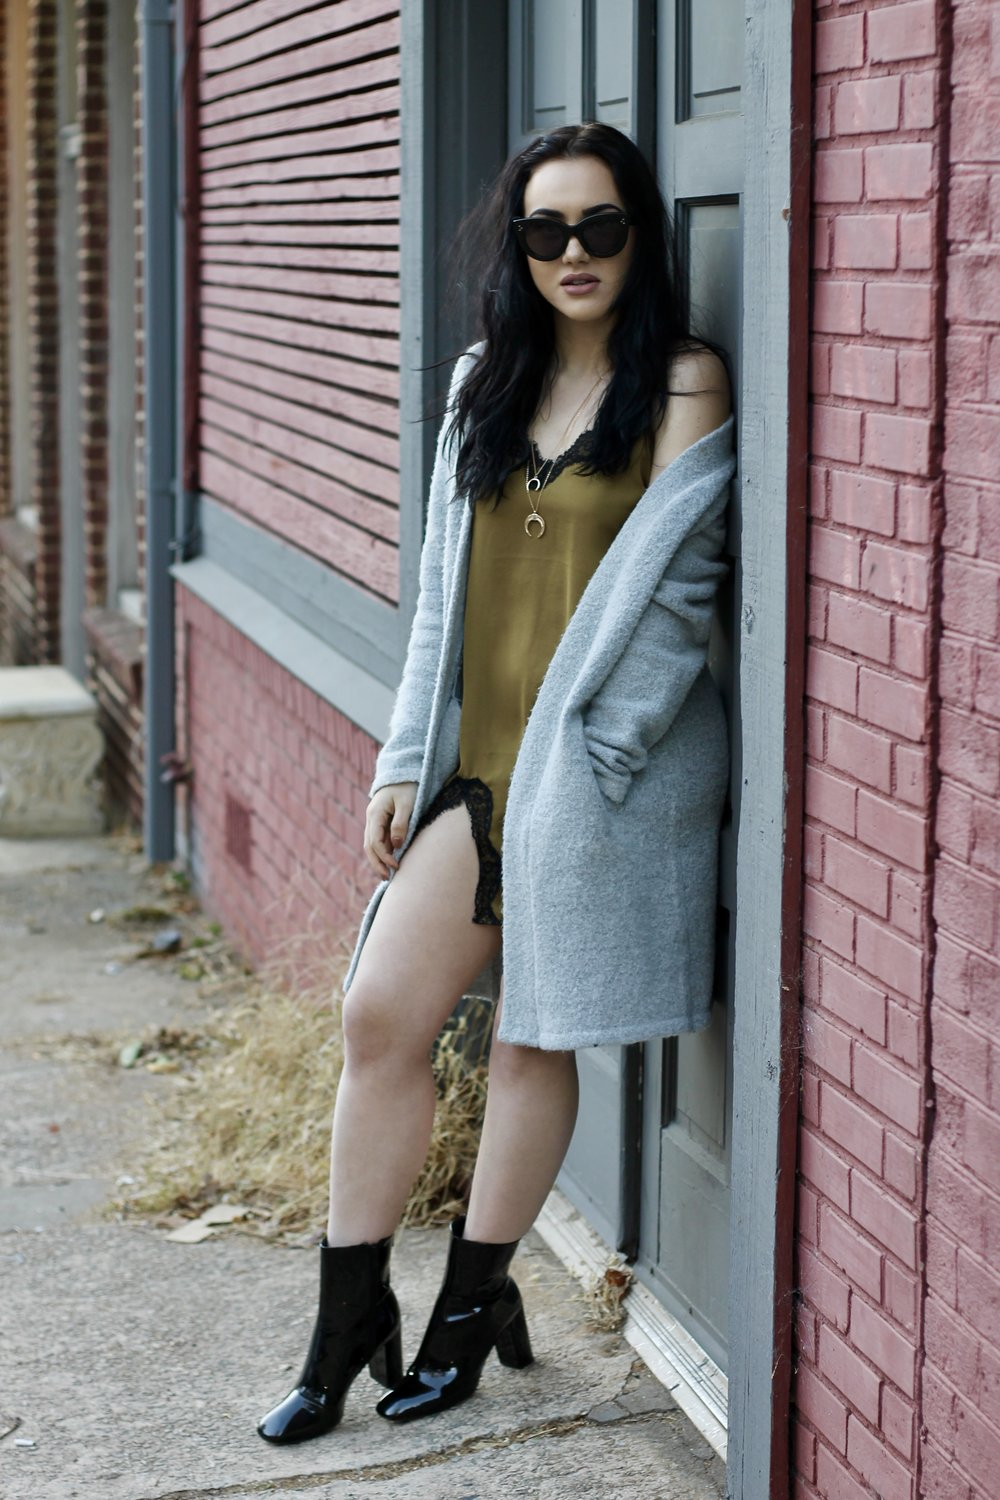 Urban Outfitters satin slip dress Forever 21 cardigan Misguided patent booties Celine sunnies